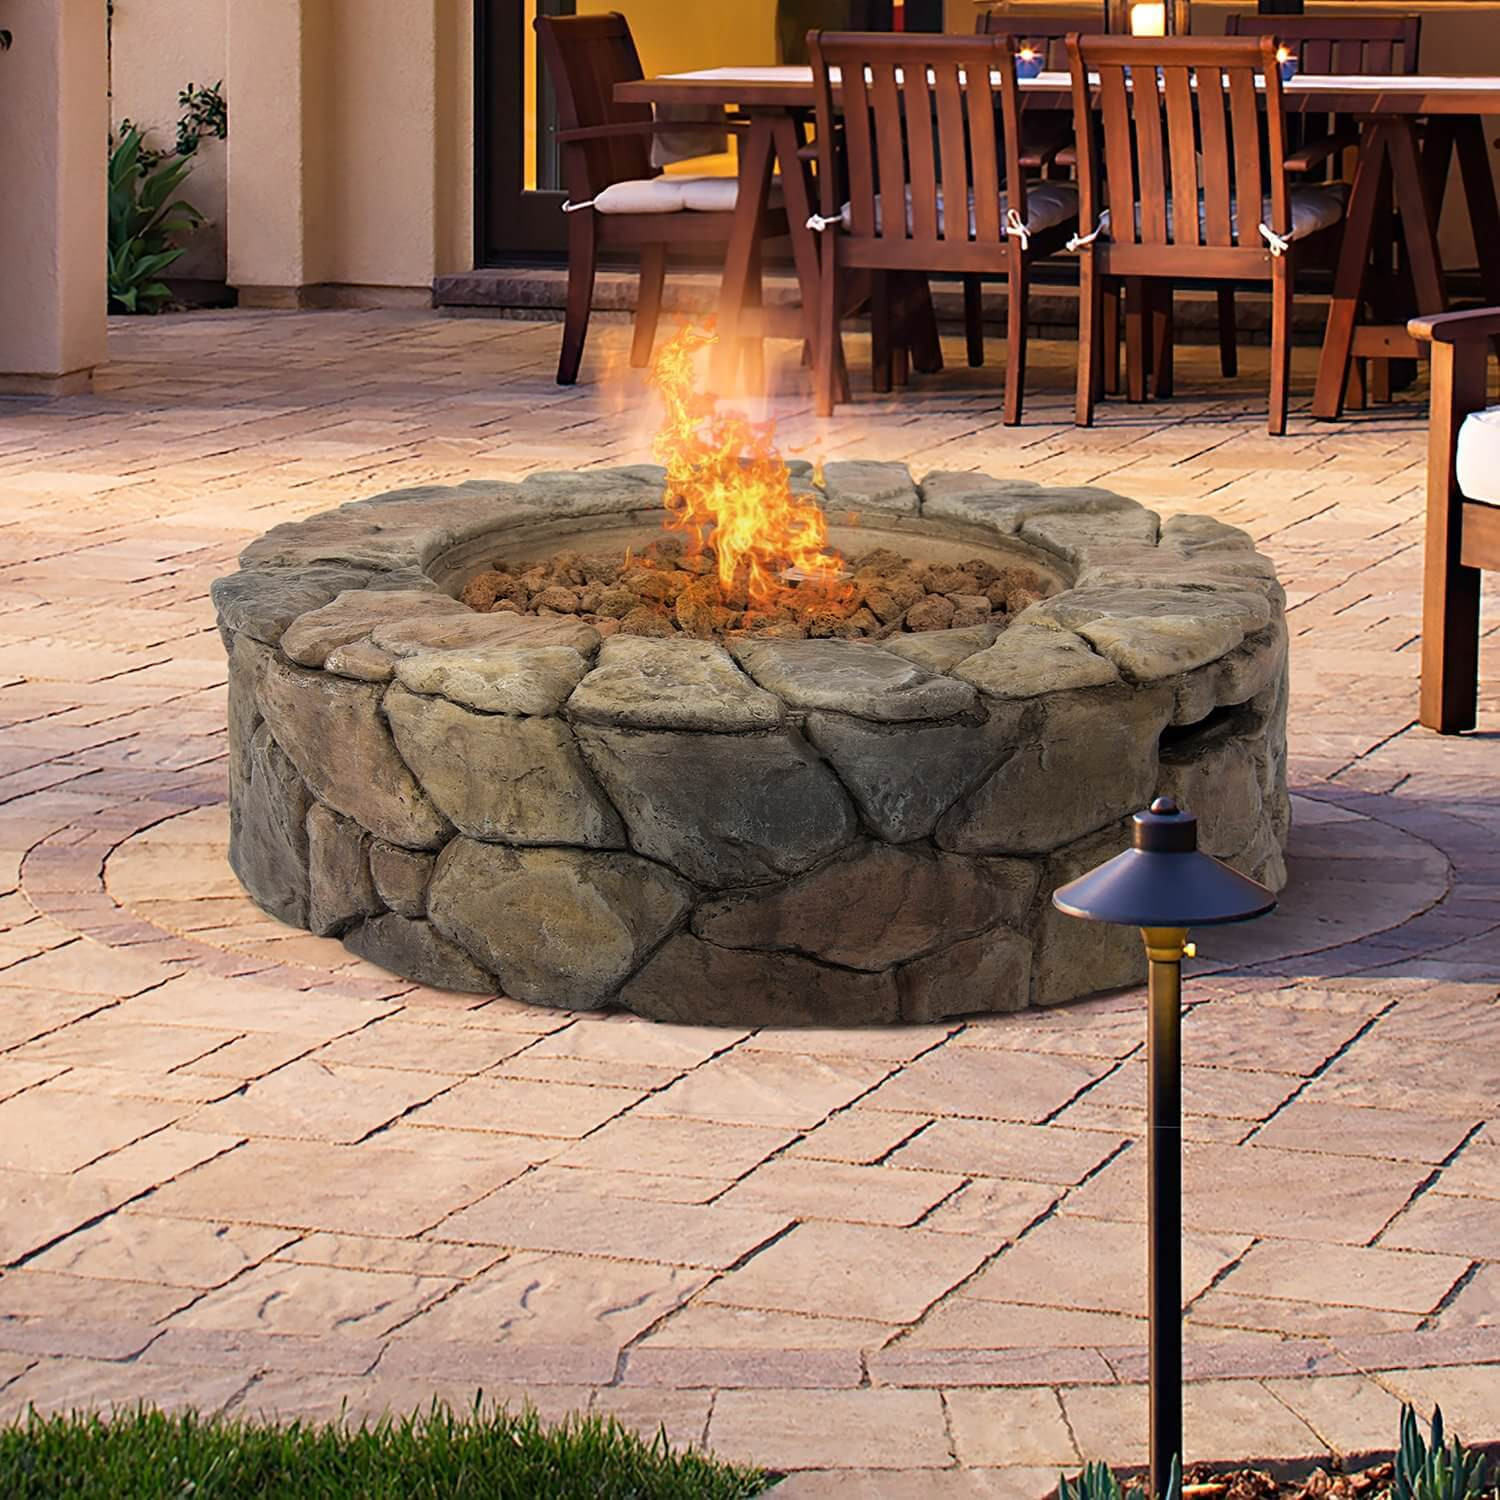 Best ideas about Patio Fire Pit . Save or Pin Top 15 Types of Propane Patio Fire Pits with Table Buying Now.